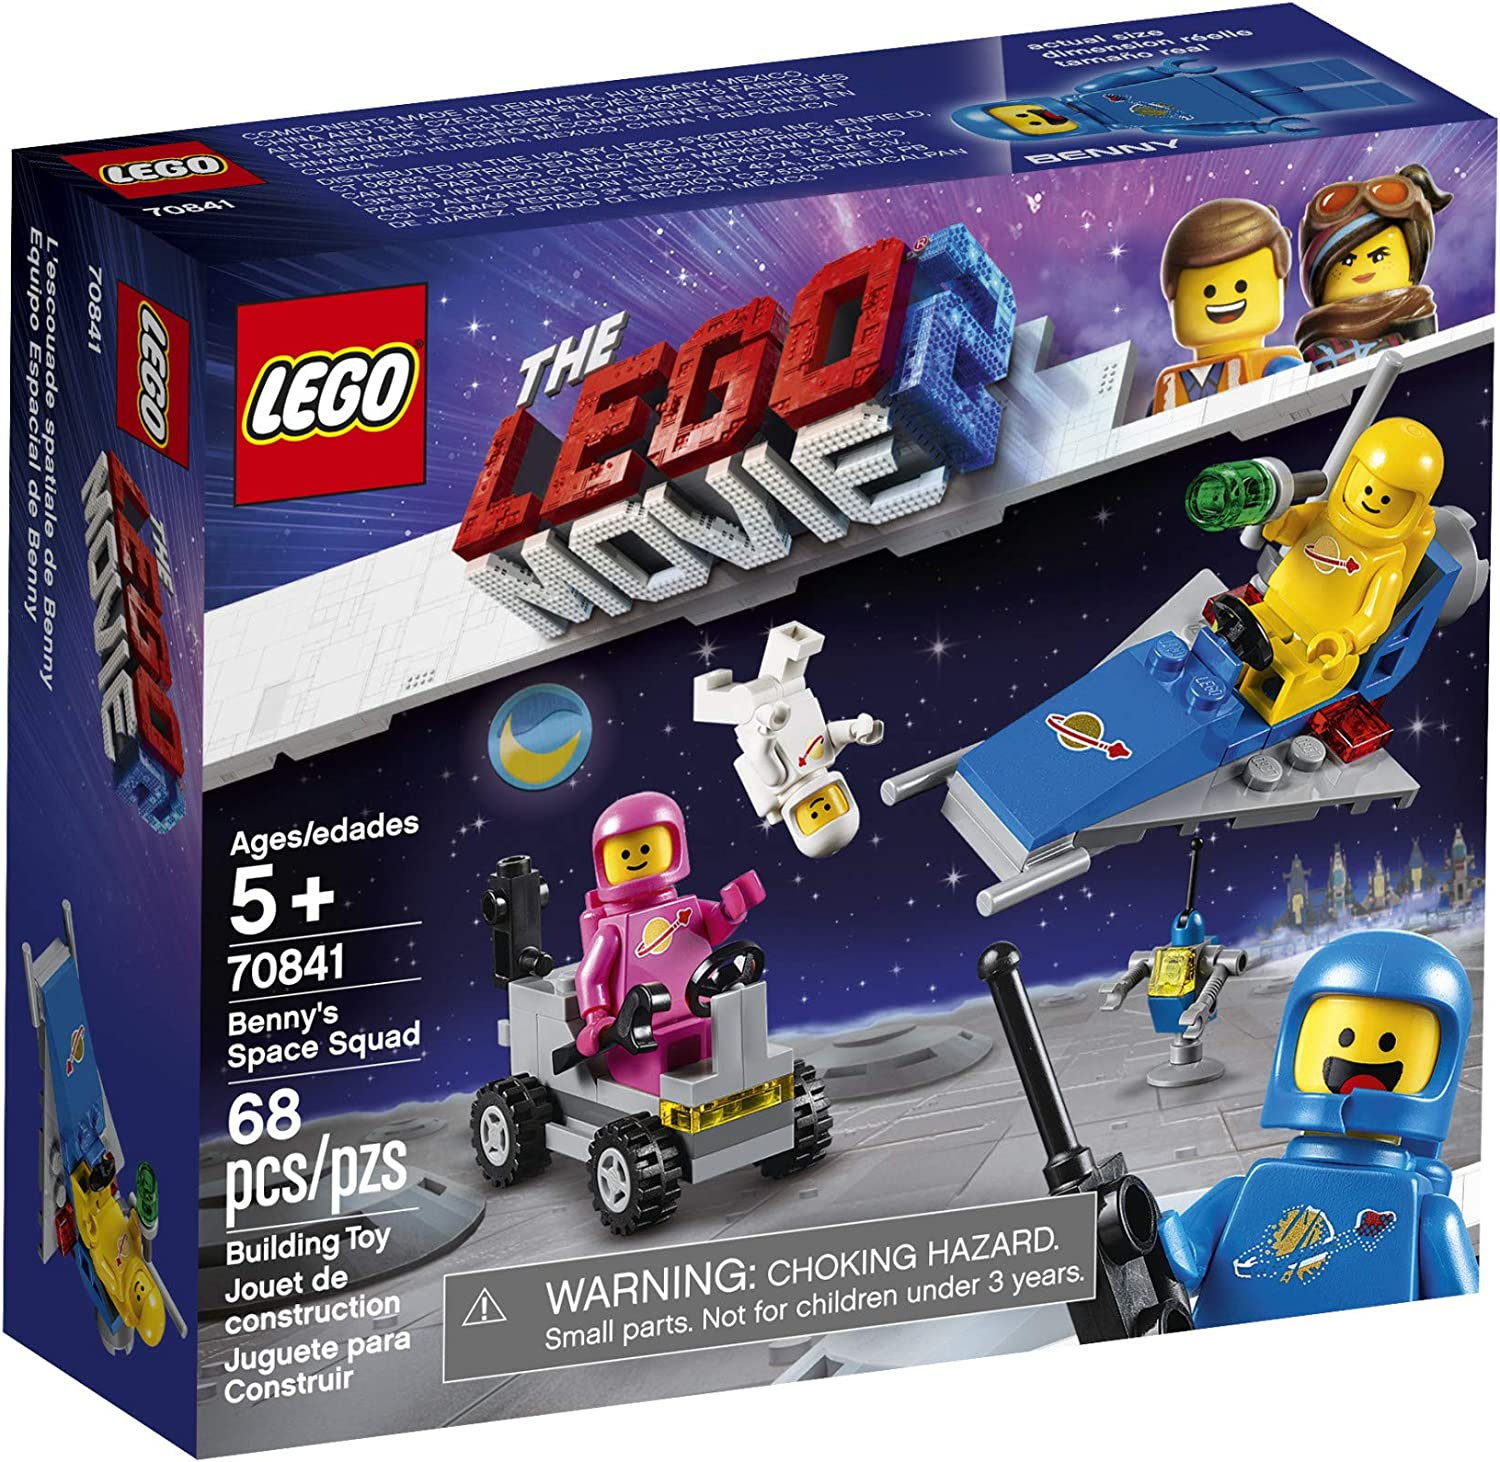 LEGO 2019 Holiday Shopping Recommendations The Brick Fan